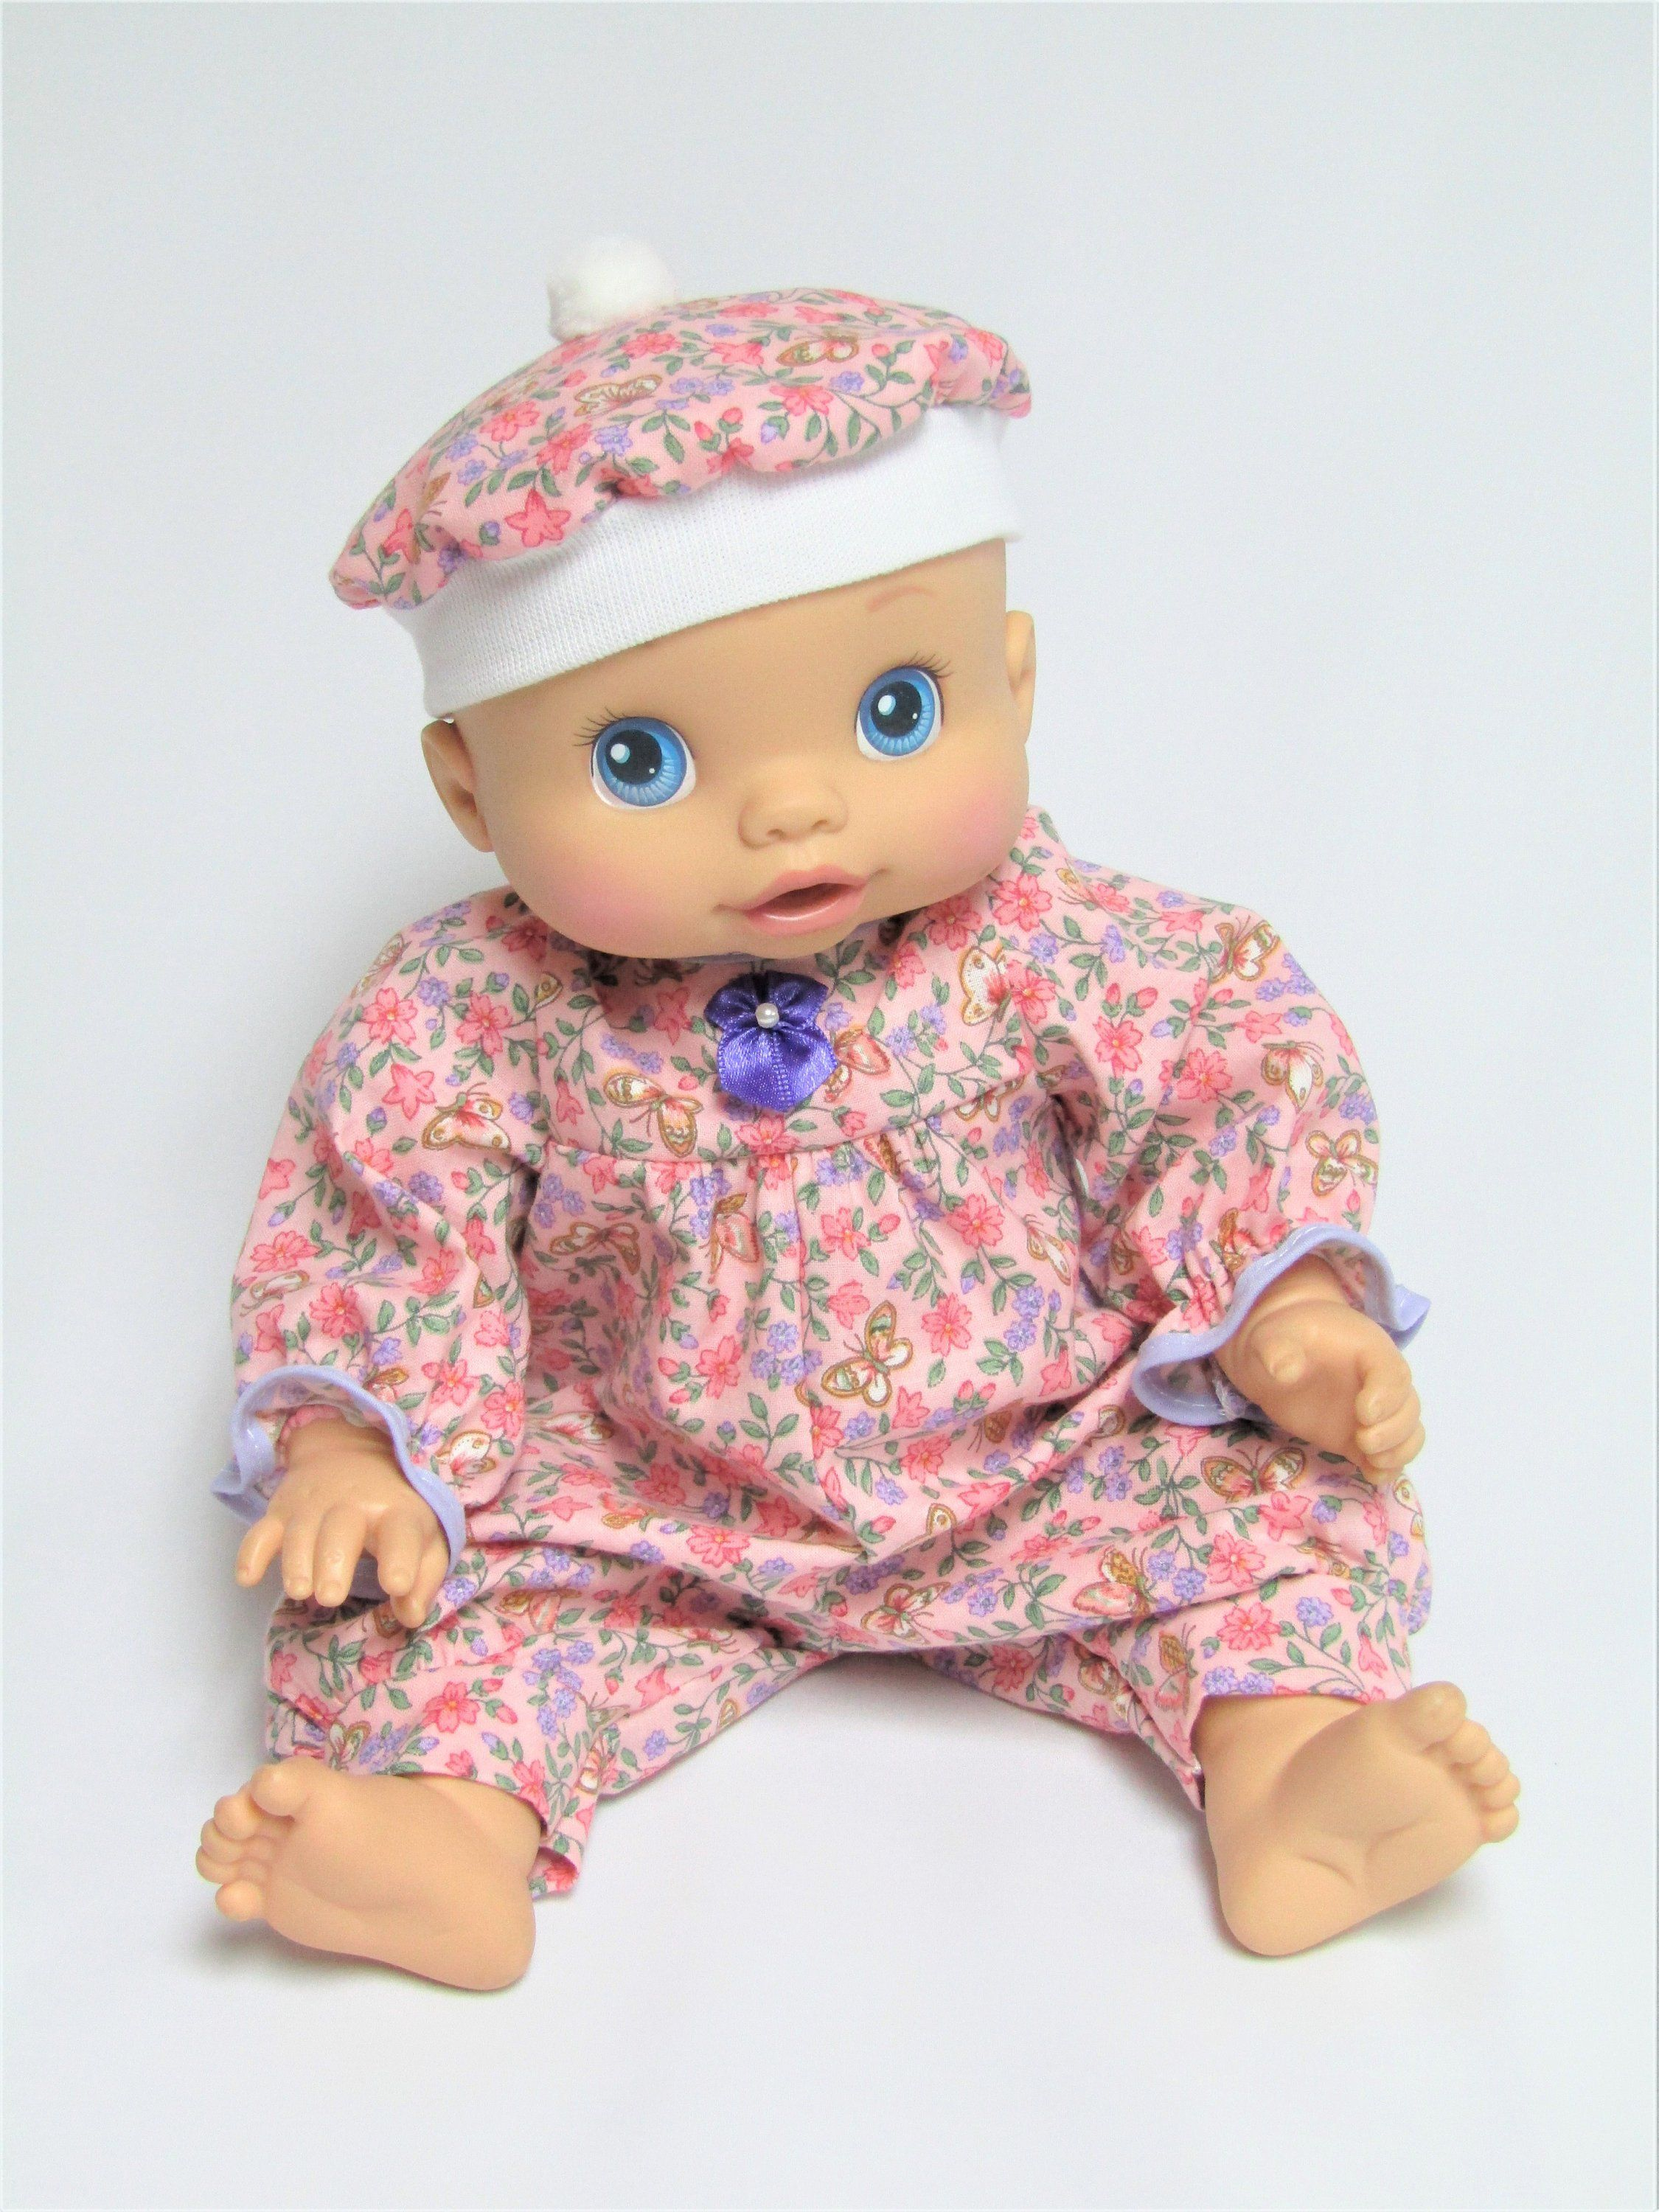 12 14 Doll Jumper Ready To Ship Small Doll Clothes 12 Inch Baby Doll Clothes Teddy Bear Clothes Baby Doll Outfit Baby Doll Accessories Adorable Doll Cl